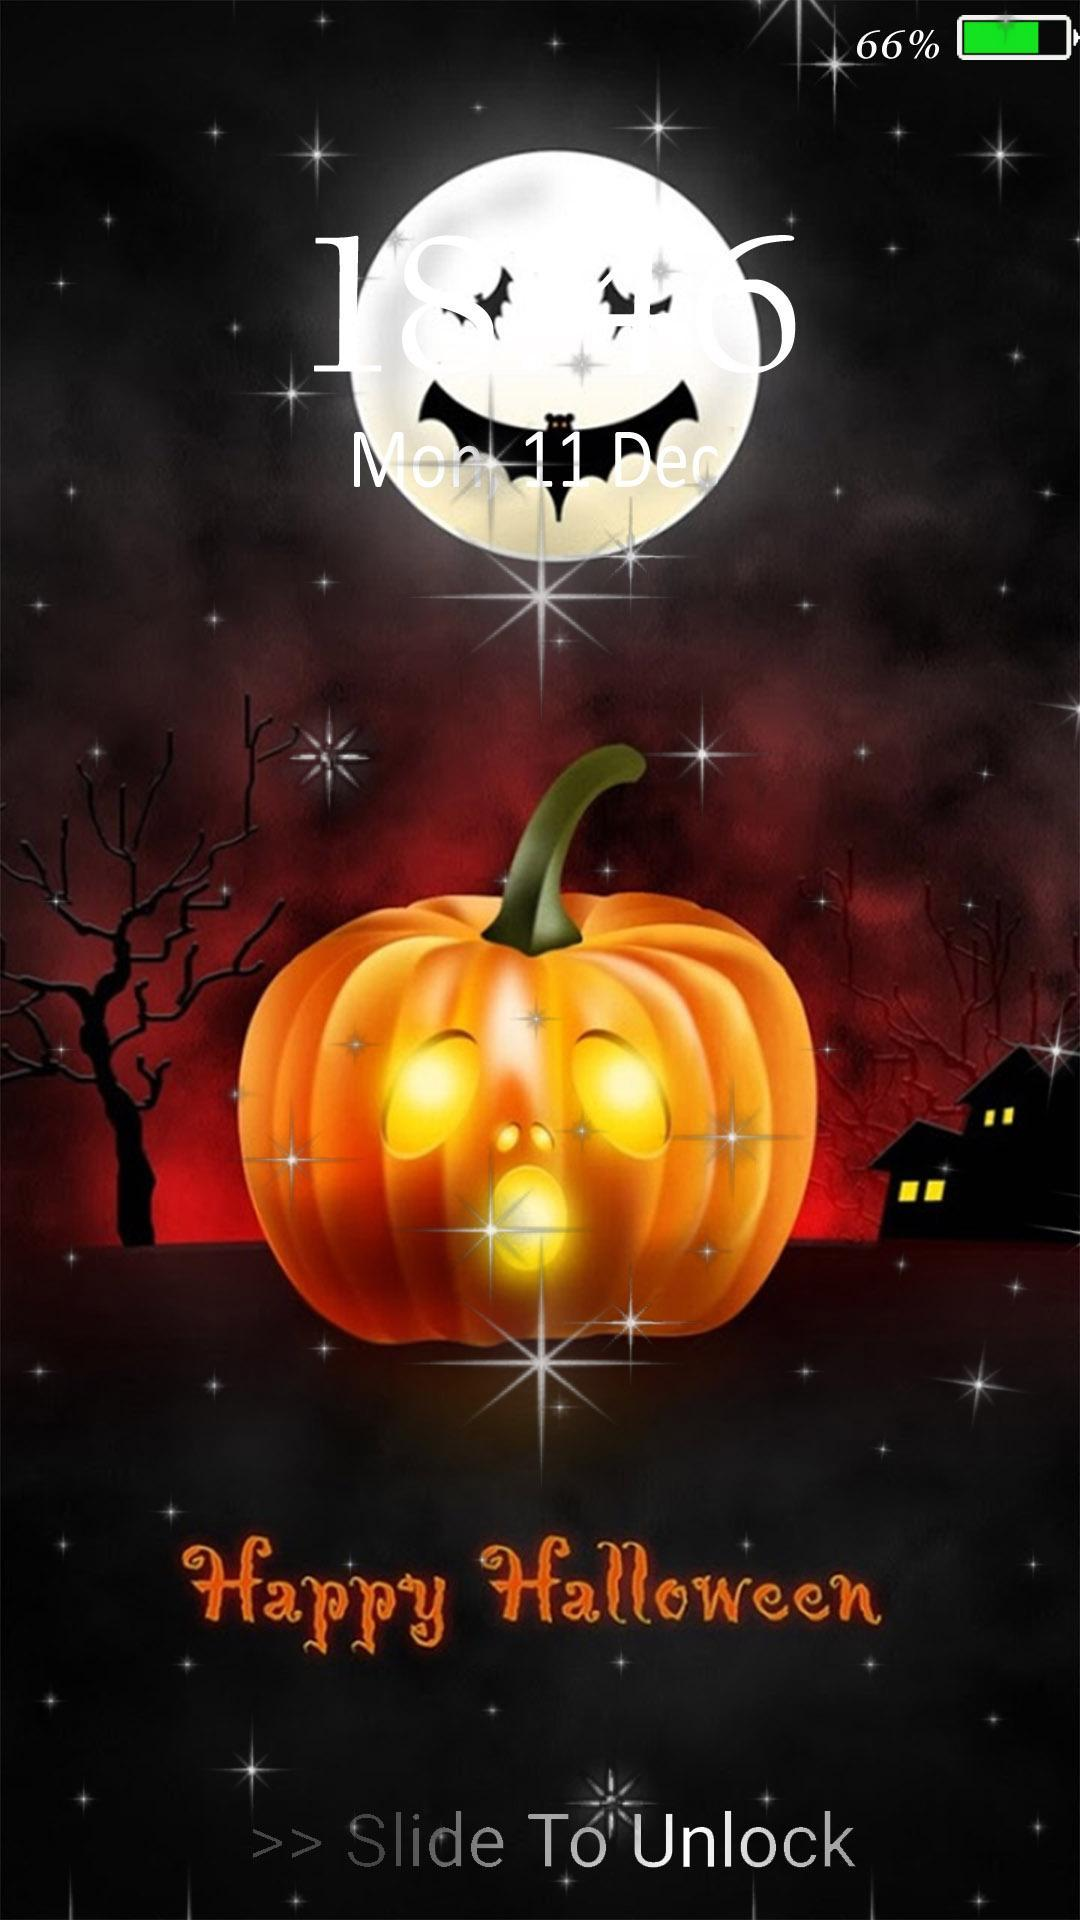 Happy Halloween Live Wallpaper Lock Screen For Android Apk Download